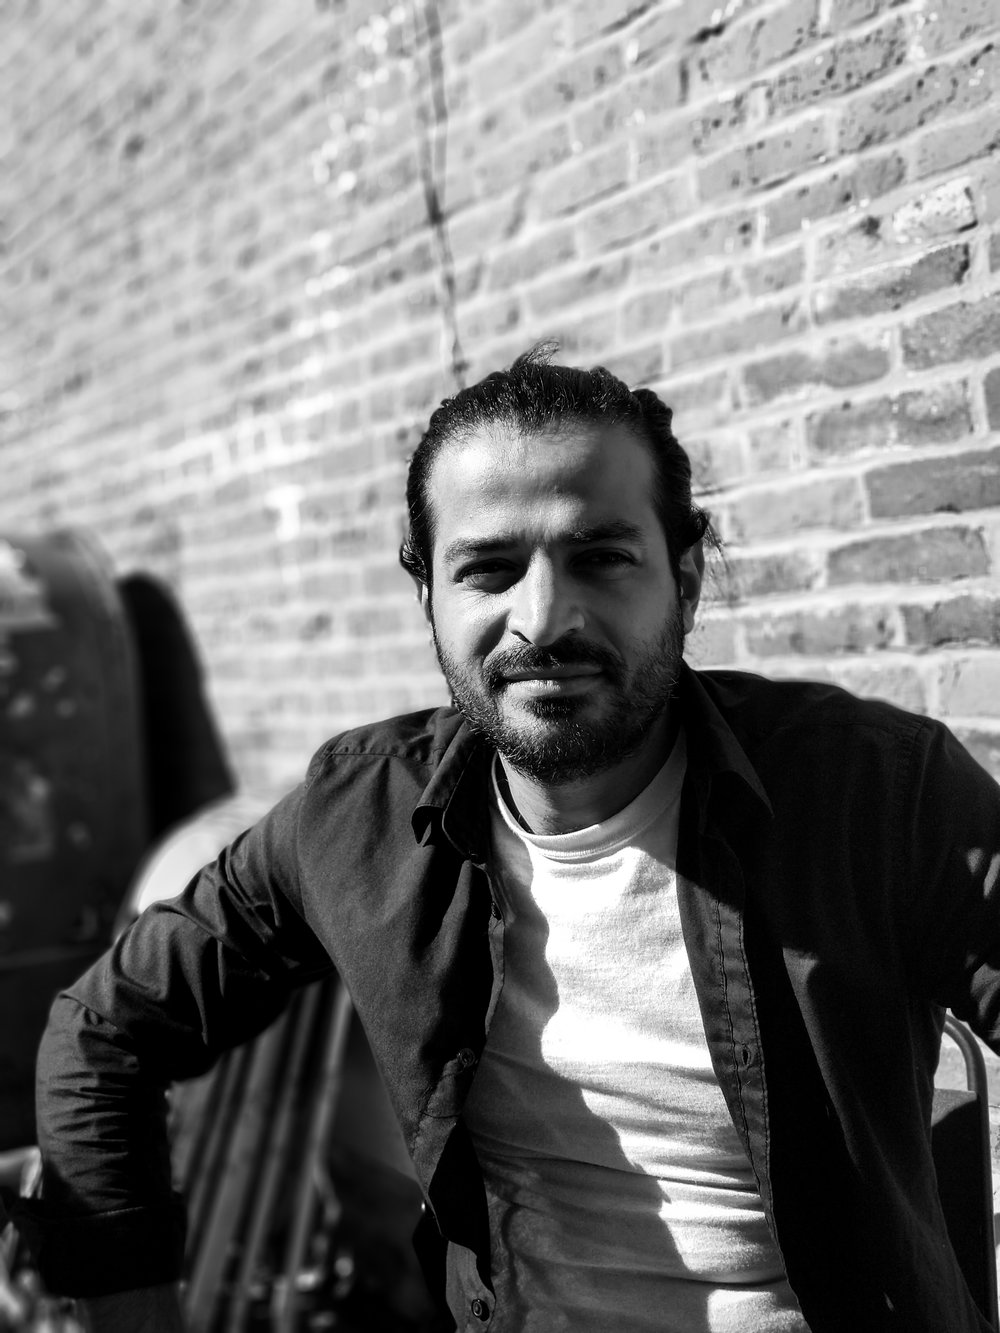 KADIM AL-ASADY   Currently an adjunct professor at the University of Kansas School of Architecture and Design, Kadim has a Master's of Architecture and has practiced professionally in Kansas City, Vancouver B.C., and New York, New York.    DEAD ARCHITECTS SOCIETY      PAPERSPACE.INK